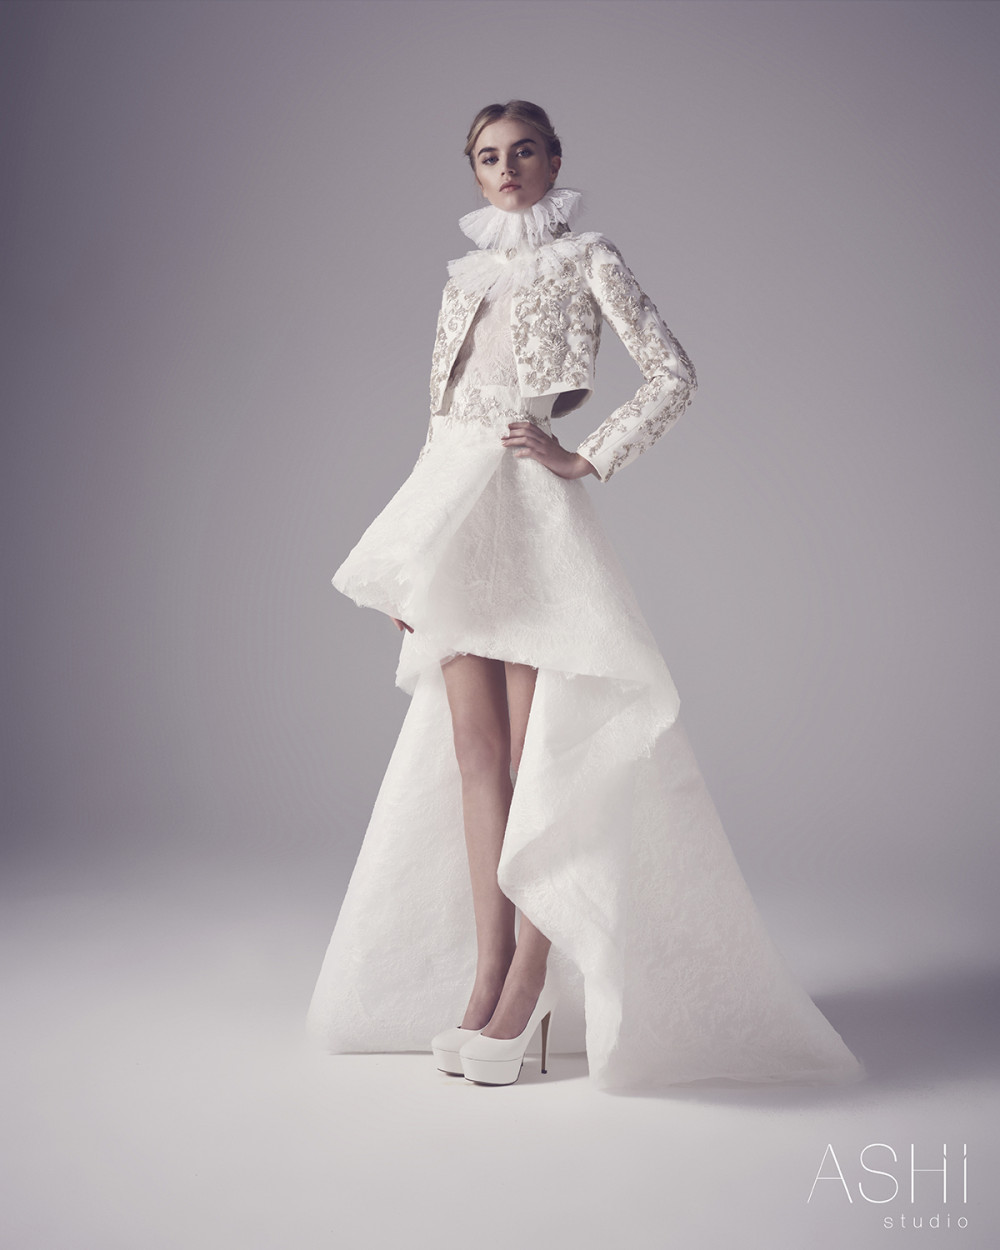 Ashi Studio_Spring Summer 2016 Couture Collection_BellaNaija Weddings_Ashi_20-021_large